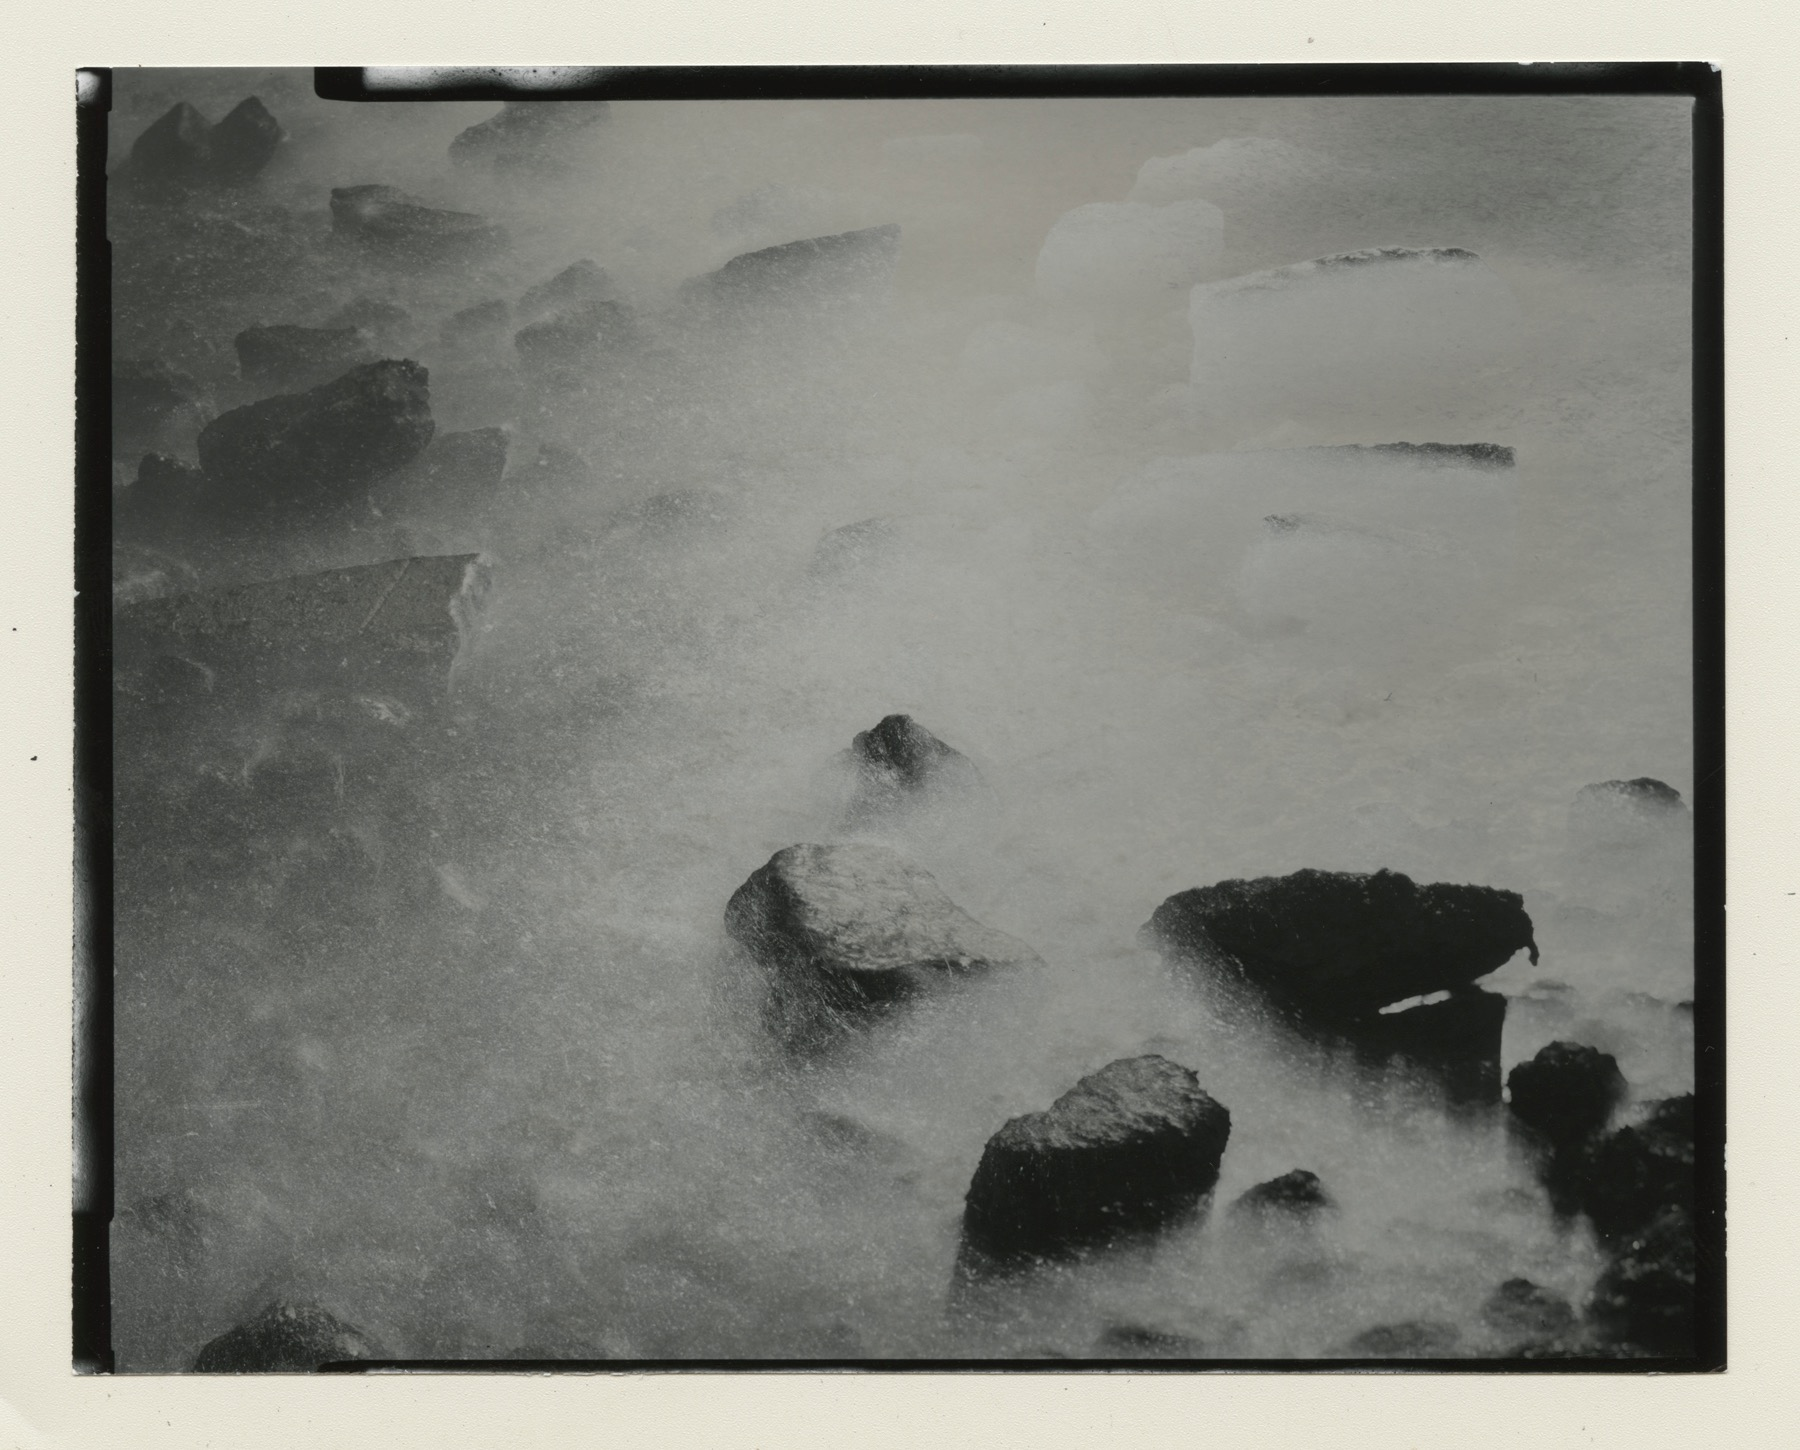 Chris McCaw,   Tidal #13 , 2014  Unique Gelatin Silver Paper Negative, 4 x 5 inches  Image courtesy of Candela Books and Gallery